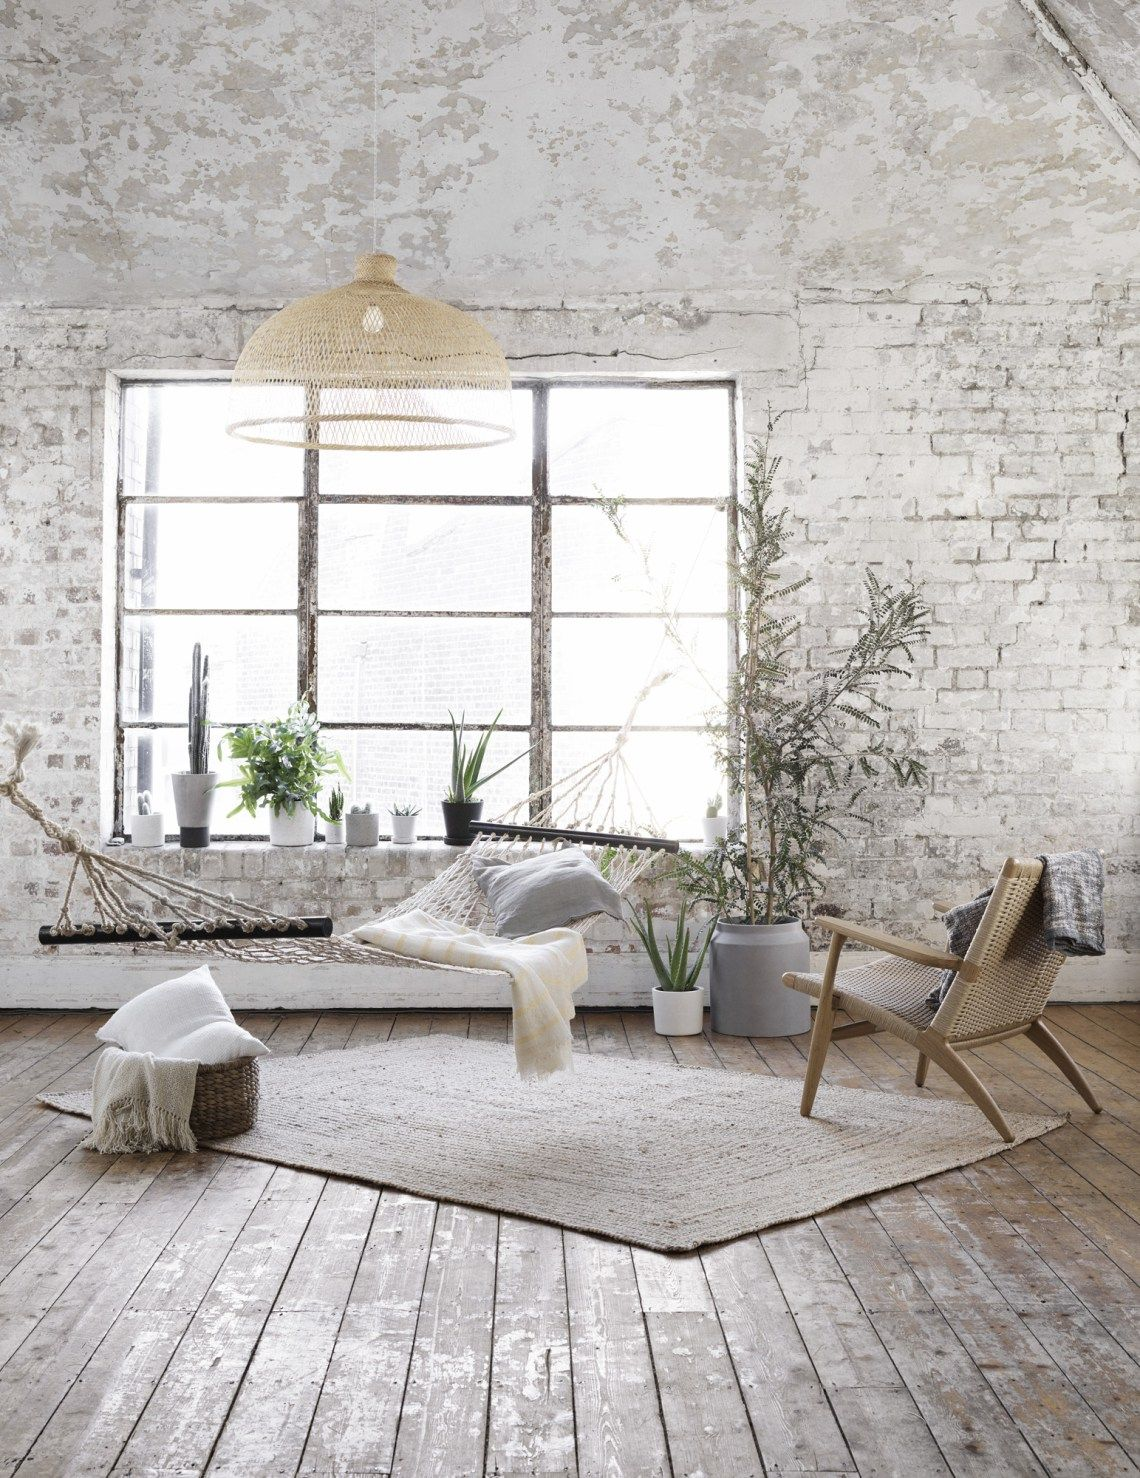 Lofty Greens Coco Lapine Design Brick Interior White Brick Walls House Design